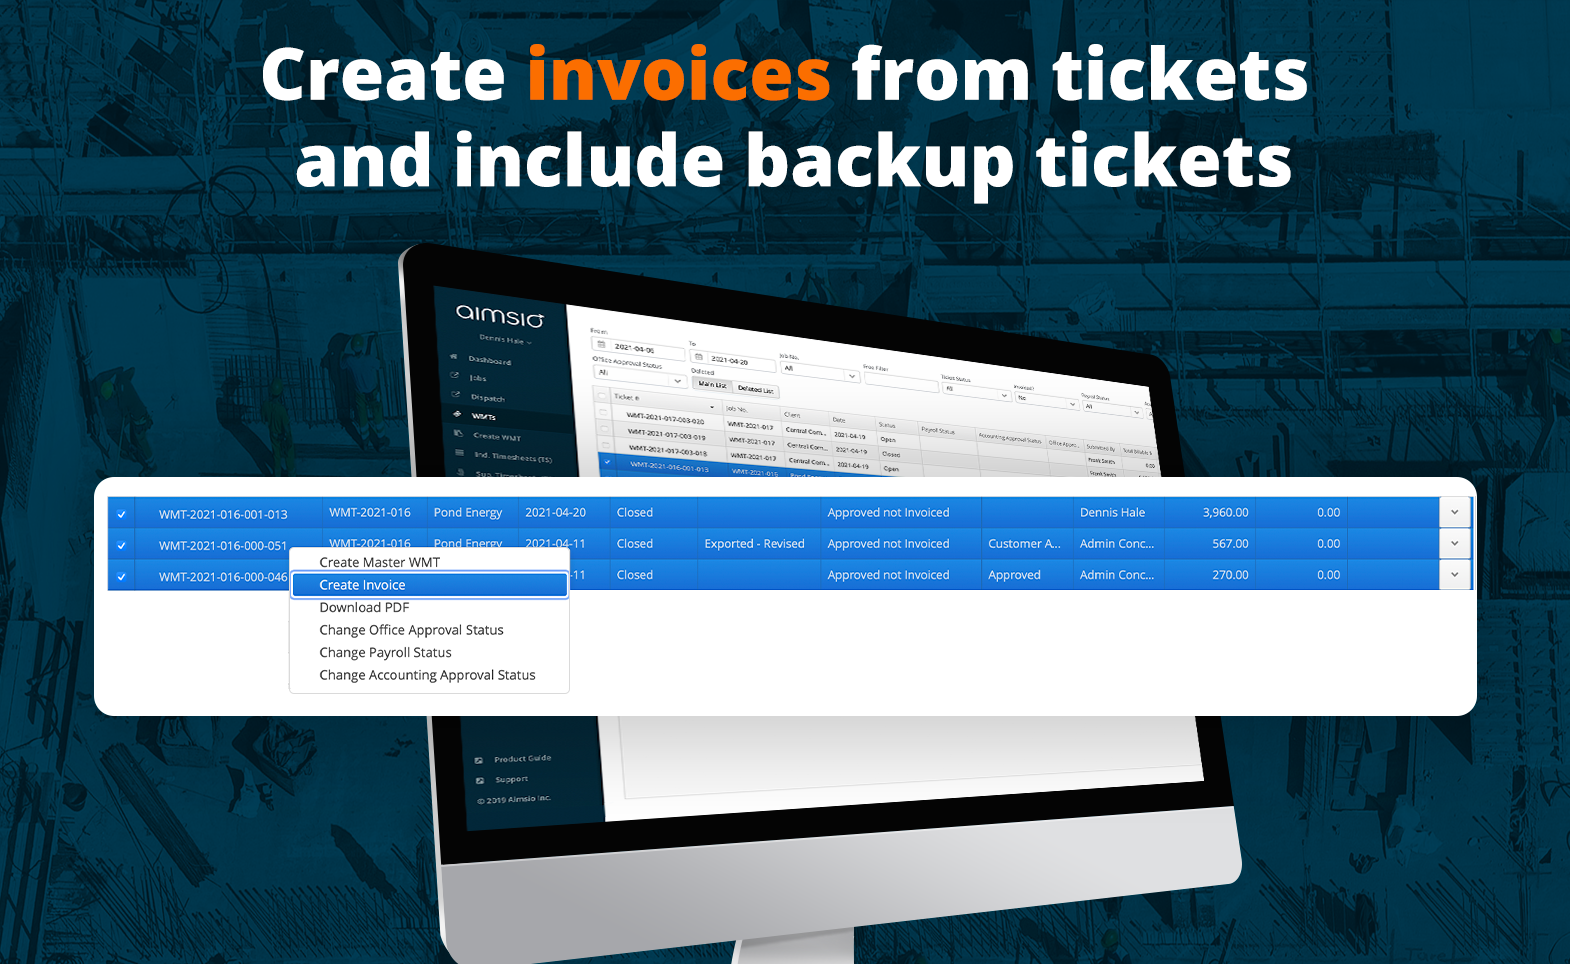 With Aimsio, it's simple to create an invoice from field tickets. Simply select the tickets you'd like to include and create an invoice. You can even choose to include back up tickets with the invoice when you send it to customers.